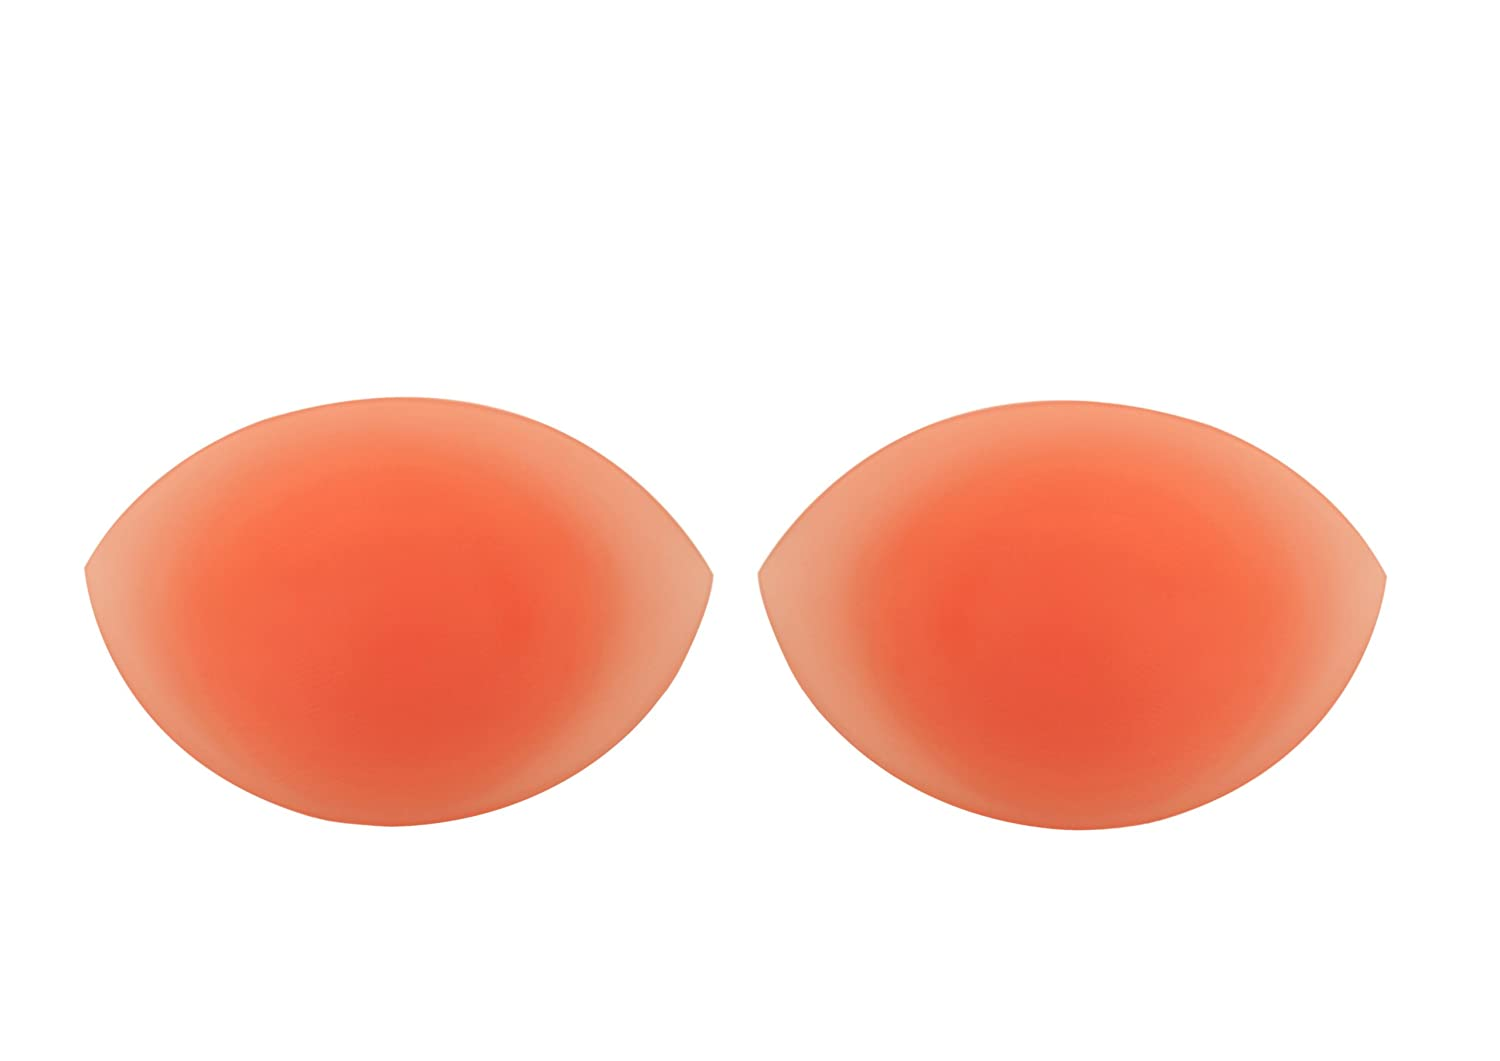 150g/pair - SODACODA Oval Shaped Silicone Inserts Chicken Fillets Breast Enhancers For Bras, Swimsuits, Bikini, Bandeau Bikinis Top - for A, B, C and D Cups - Clear Colour